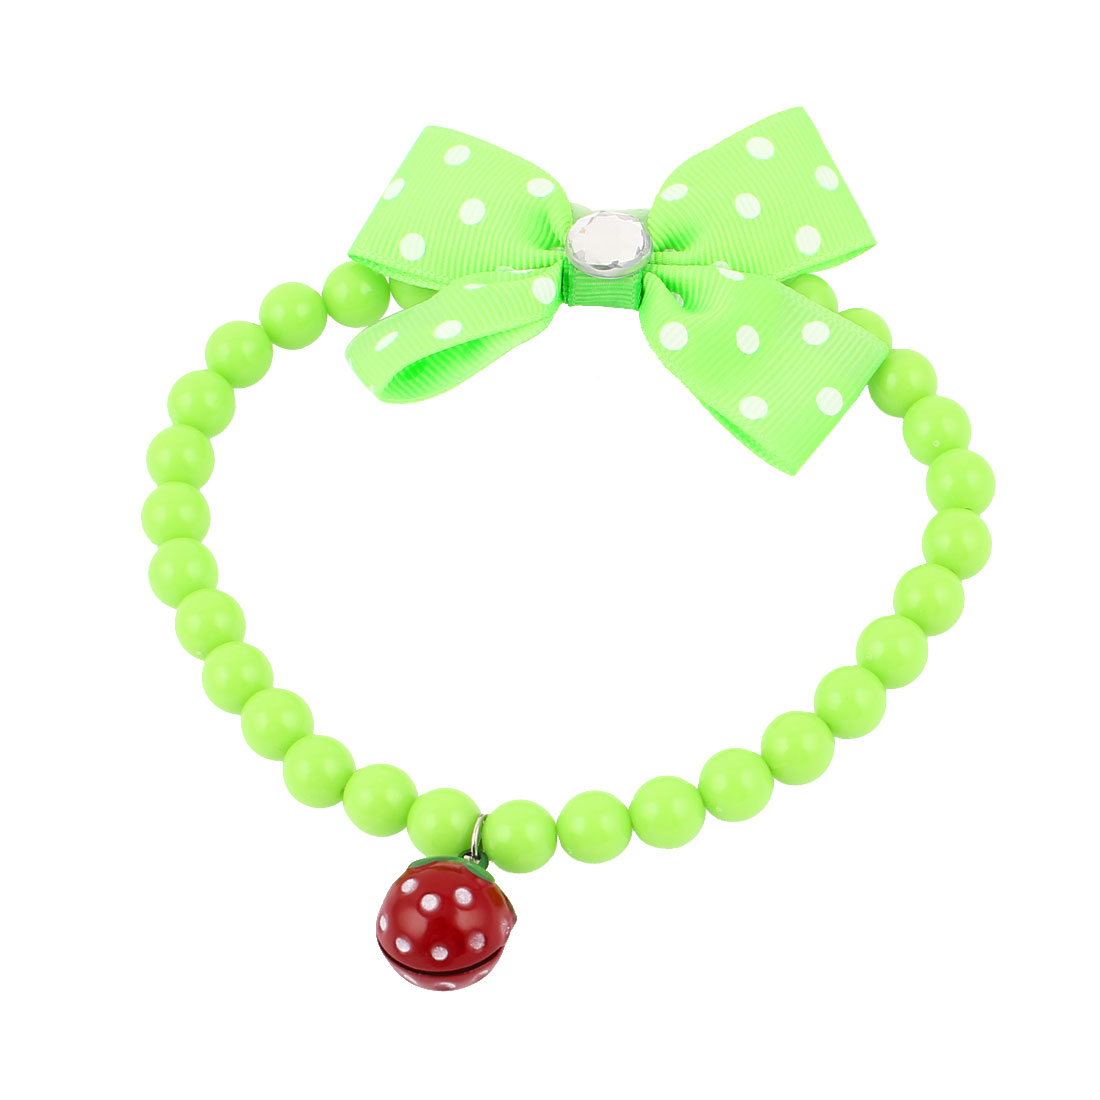 Metal Bell Pendant Bowtie Accent Pet Dog Plastic Beads Collar Necklace Green M